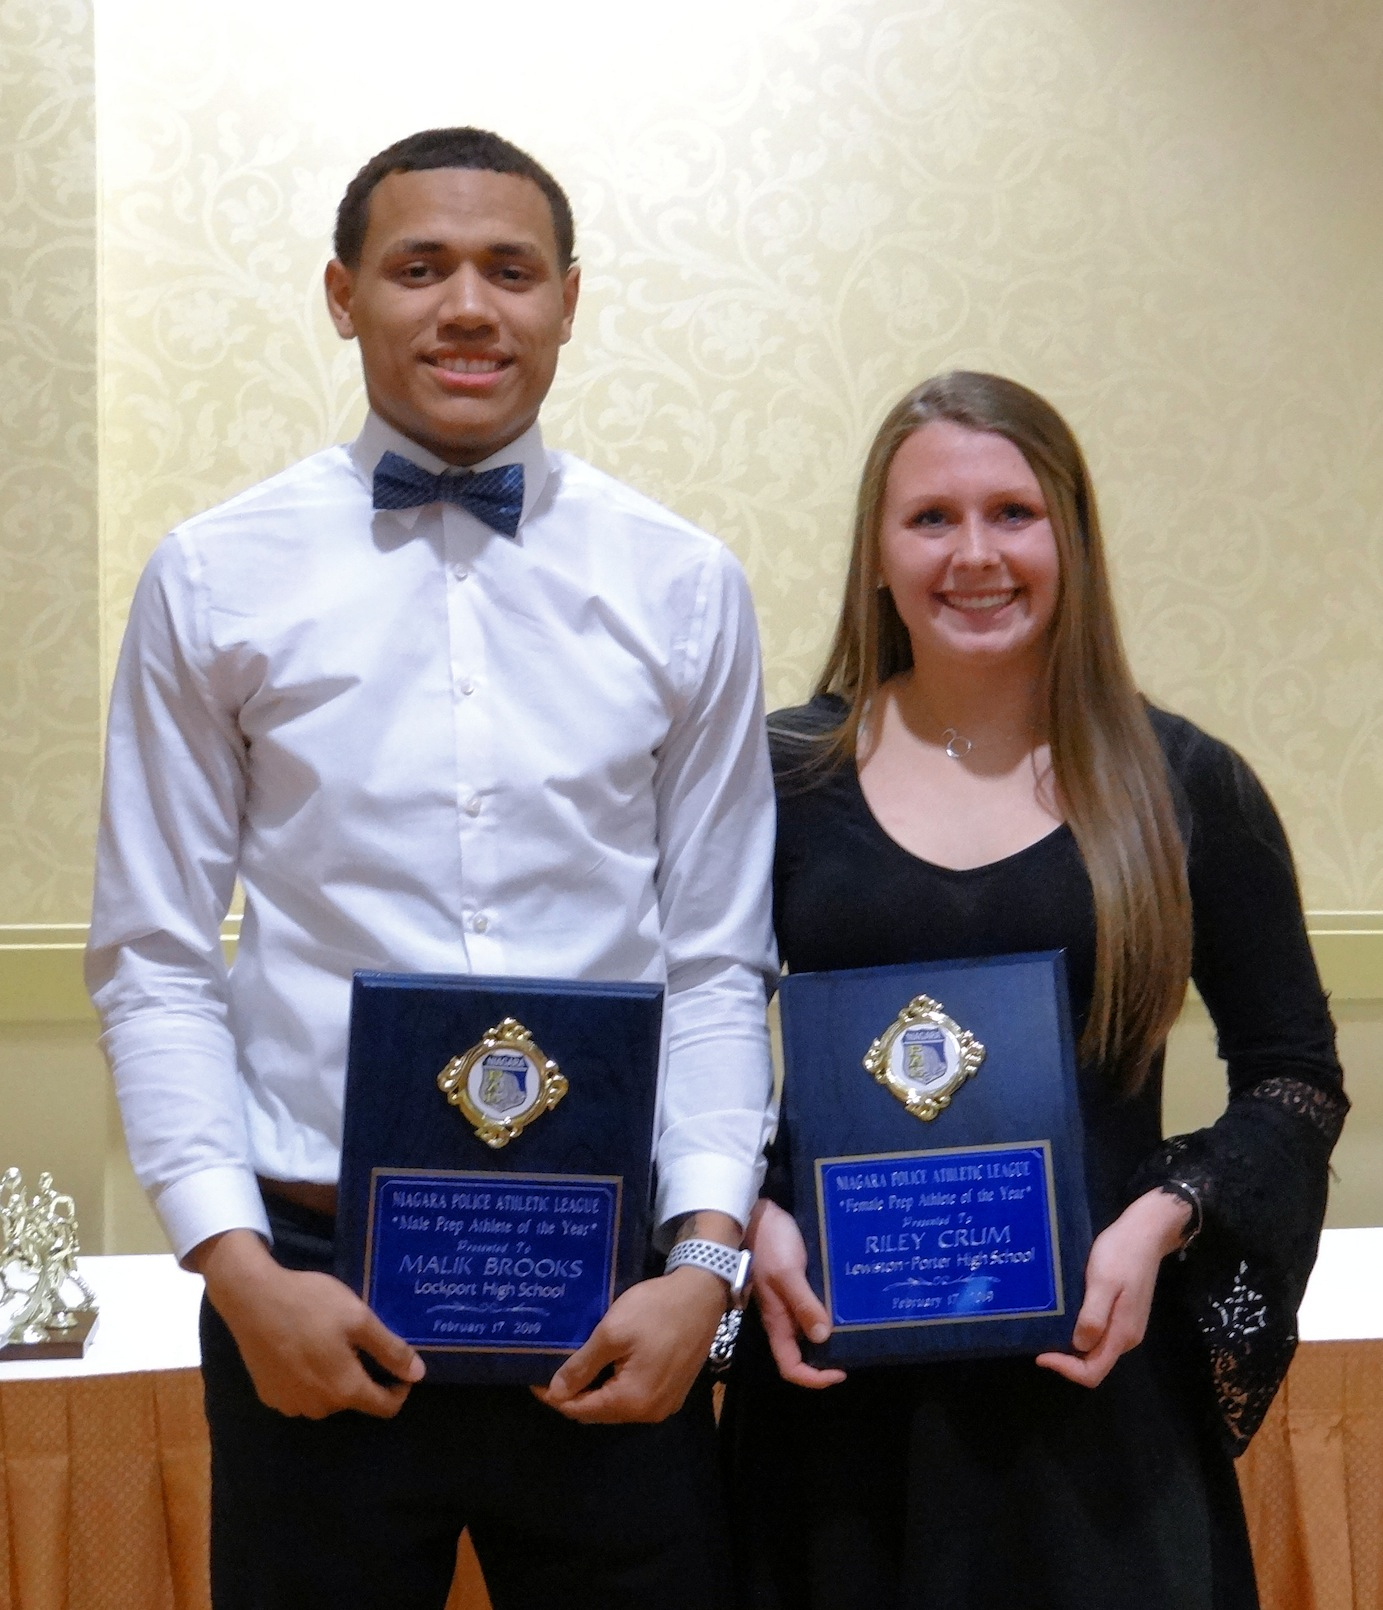 Pictured, from left, Malik Brooks of Lockport and Riley Crum of Lewiston-Porter pose as the 2018-19 Niagara PAL Prep Athletes of the Year. (Photos by Lorna Peltier)